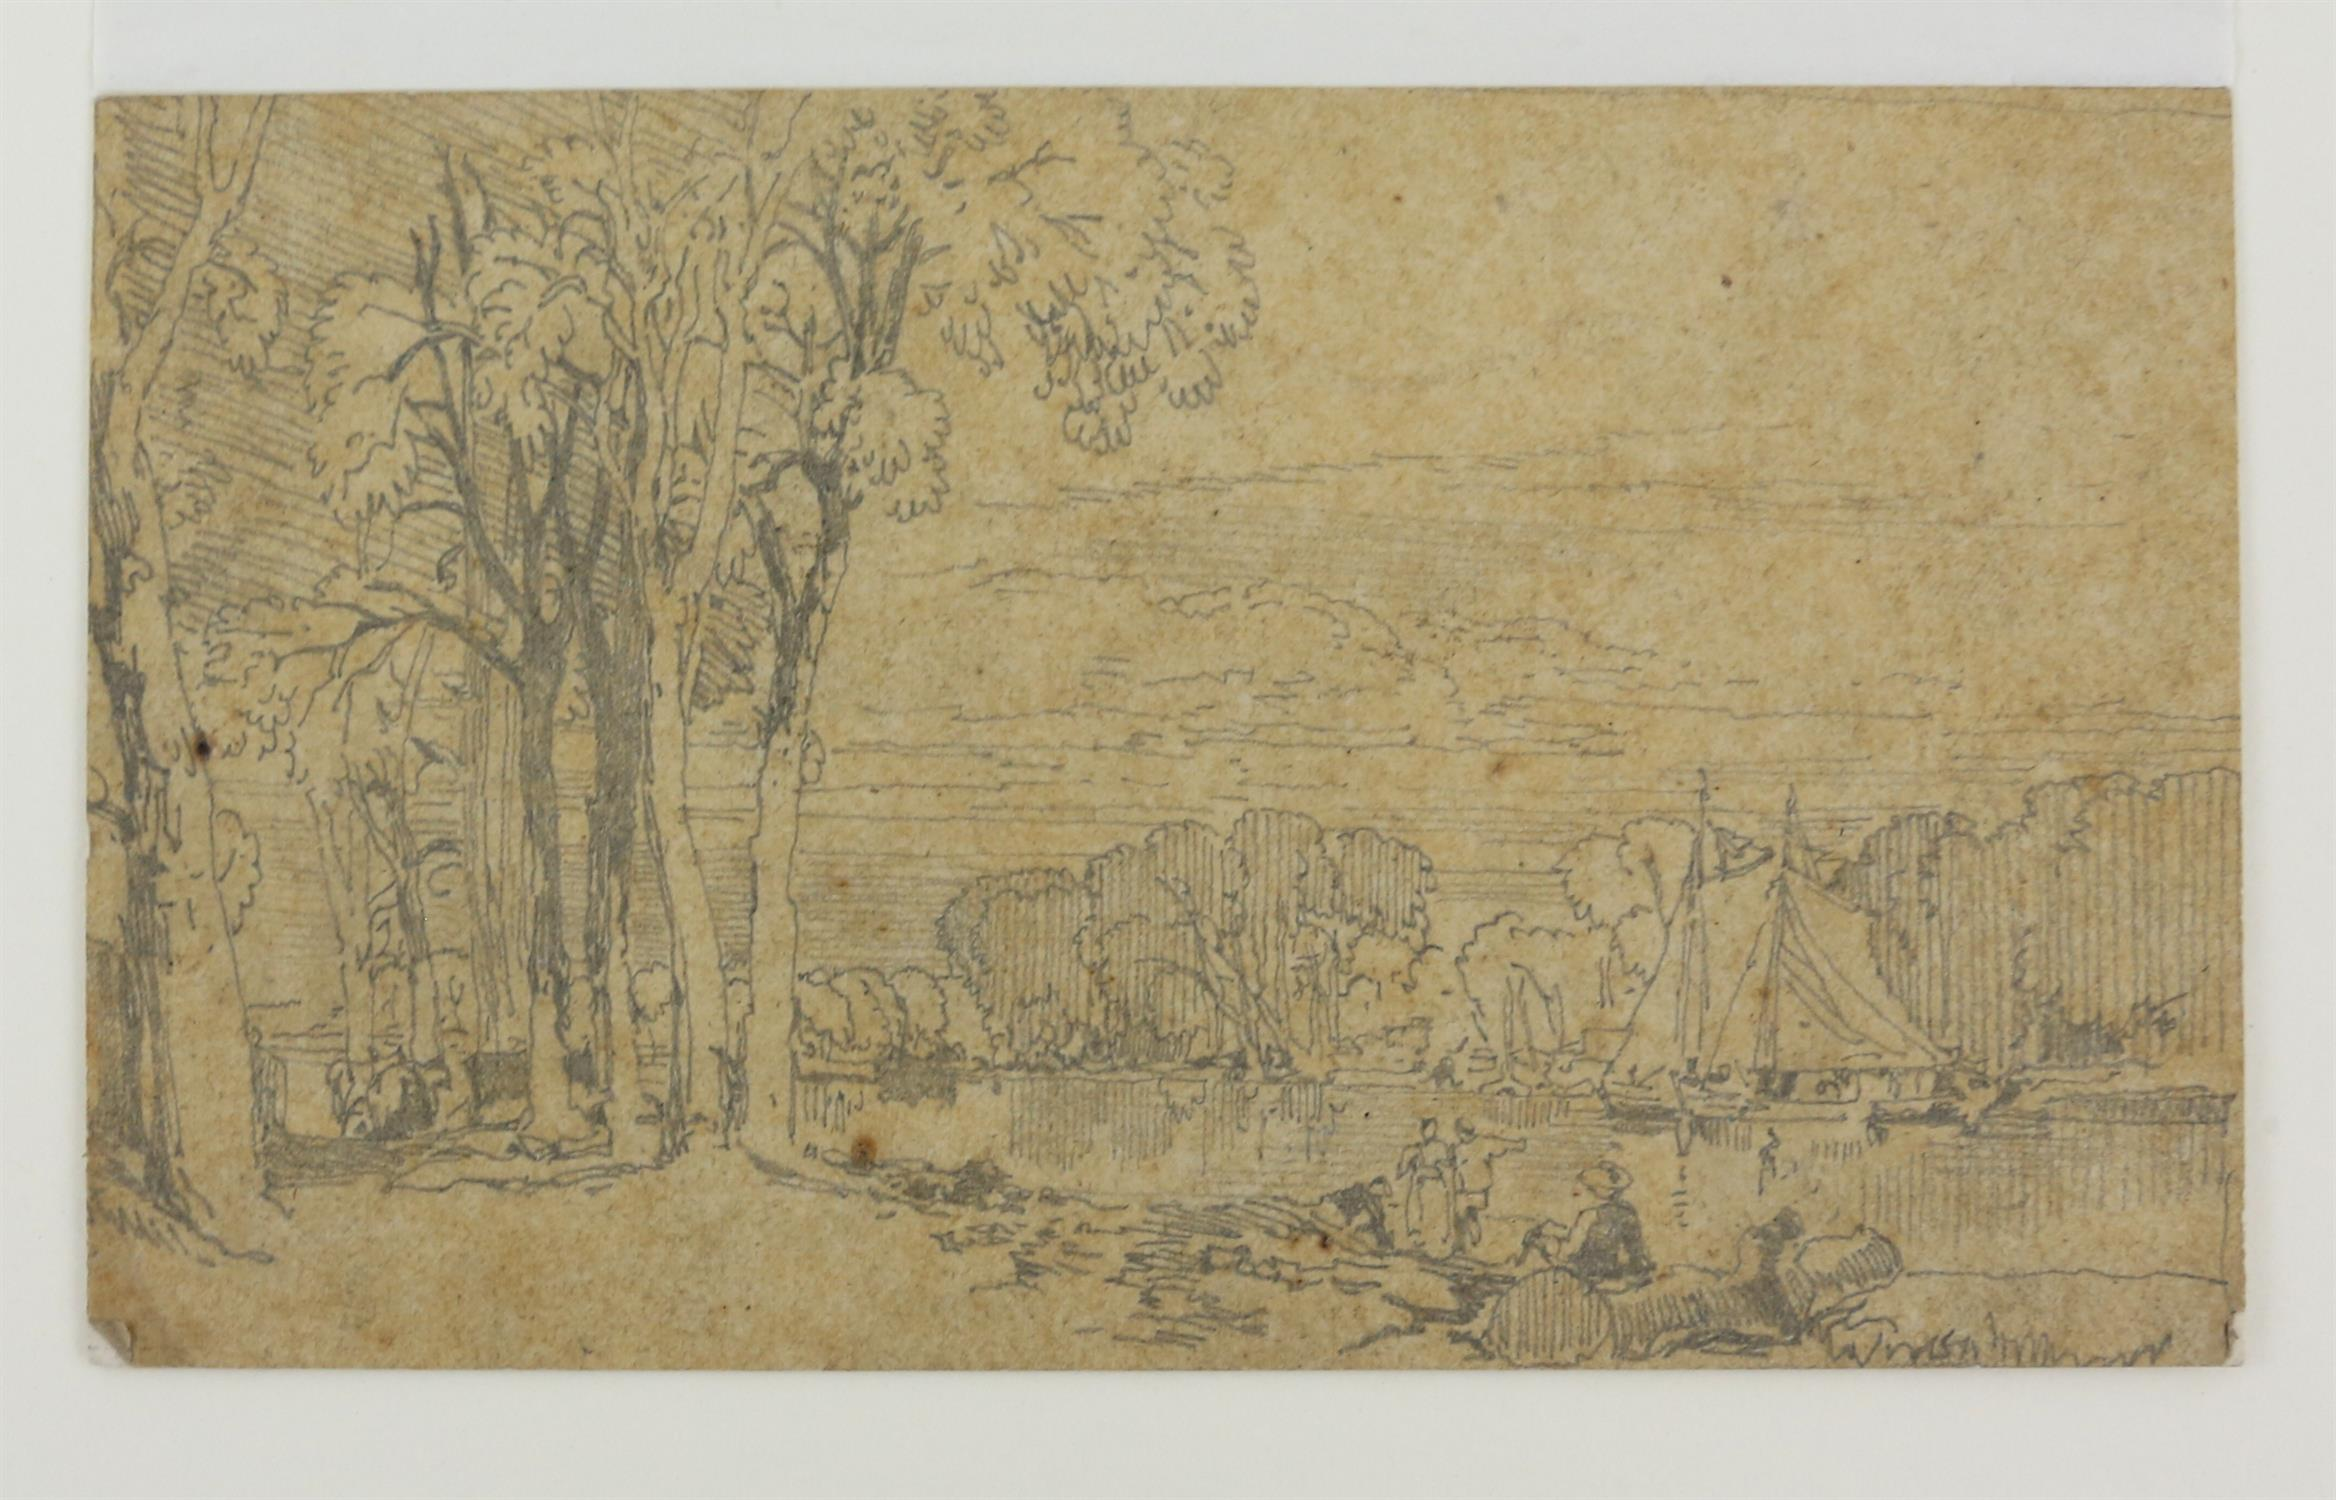 19th century scene with a castle and figures before the moat, sepia wash, 9.5cm x 15. - Image 7 of 8